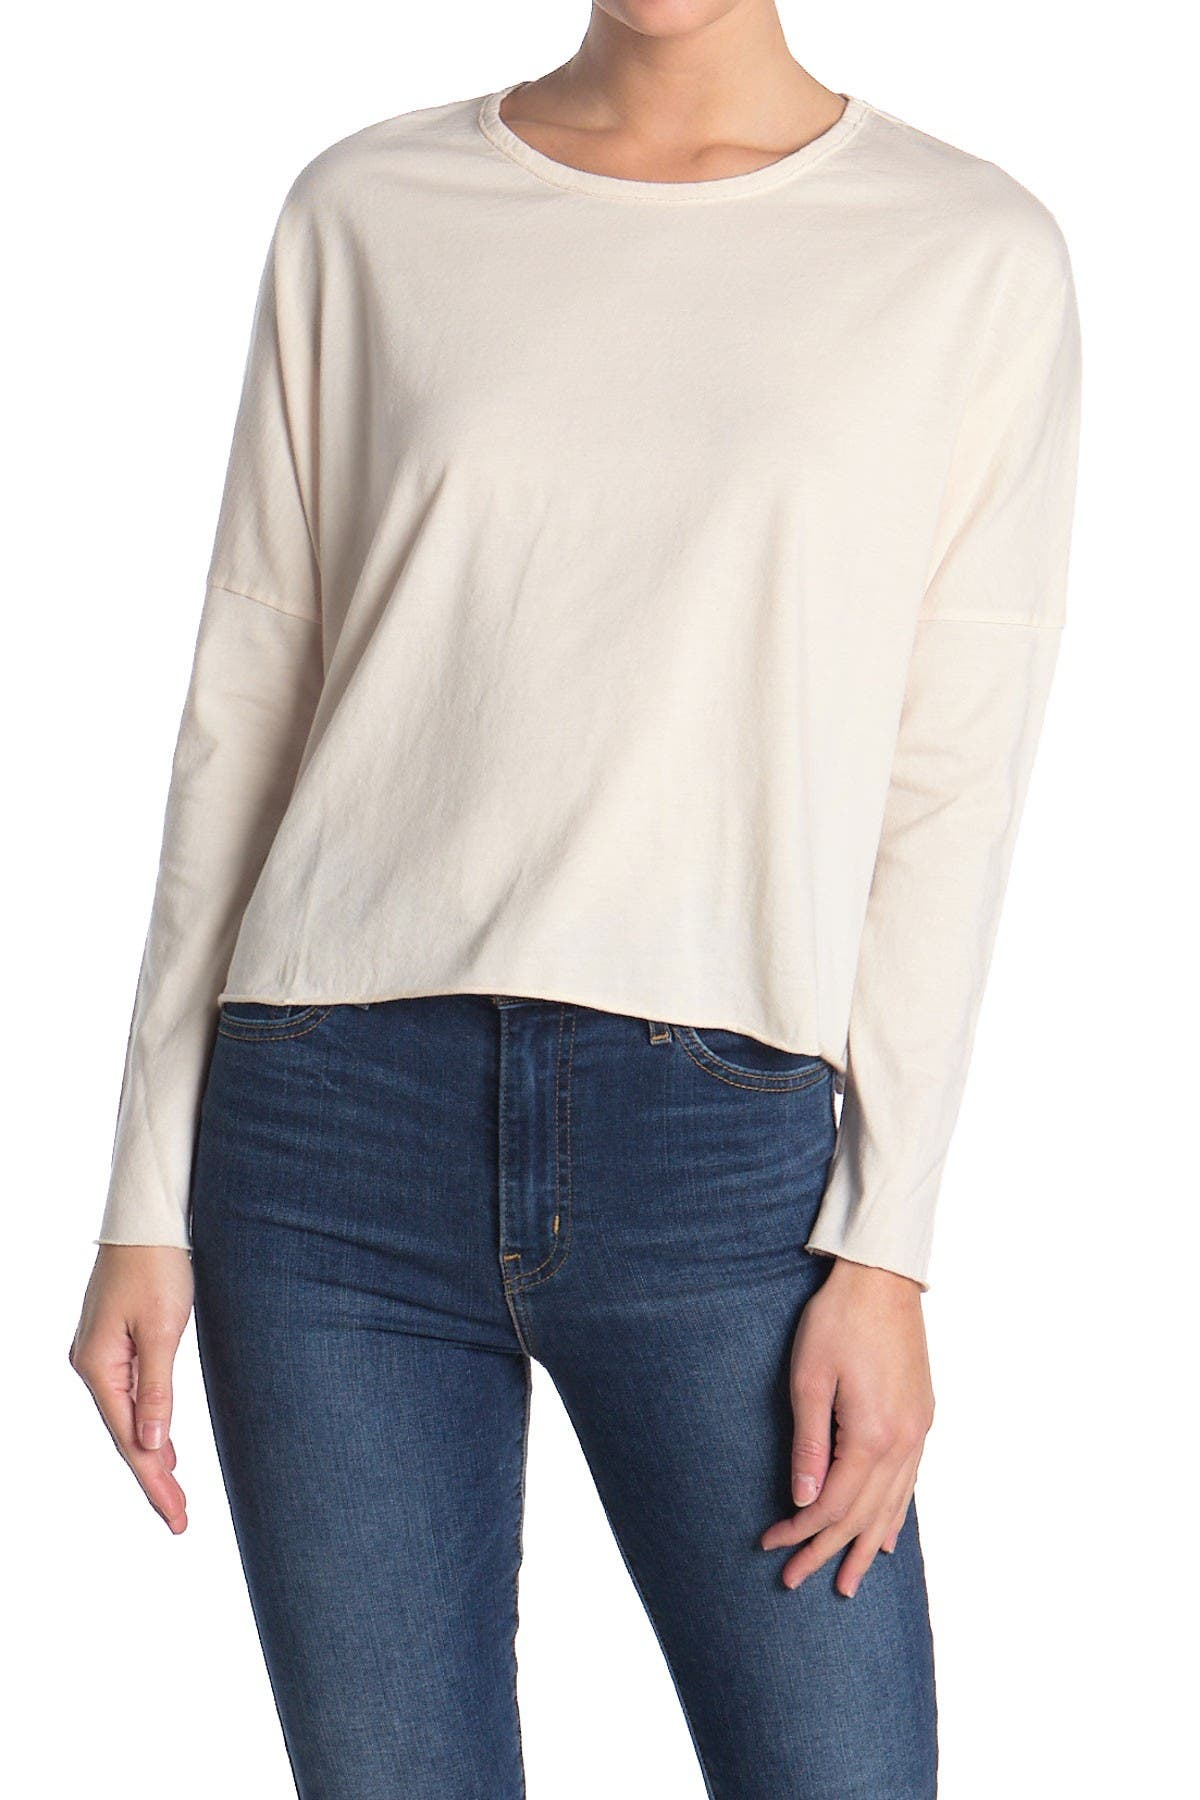 Image of FRANK & EILEEN Solid Dolman Long Sleeve Crop T-Shirt